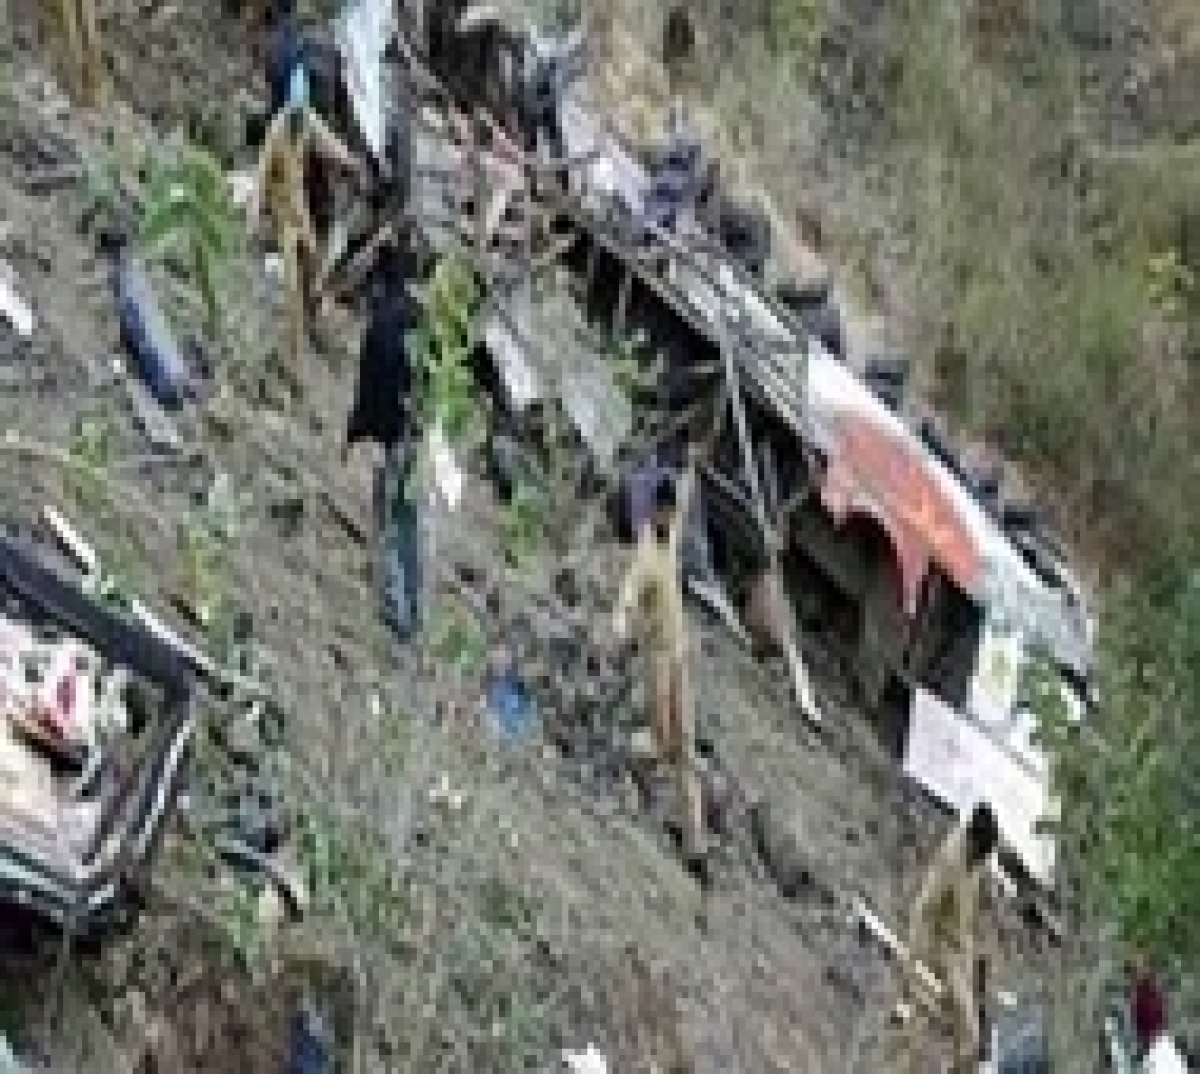 Nepal: One killed, 40 injured in Jaleshwor bus accident